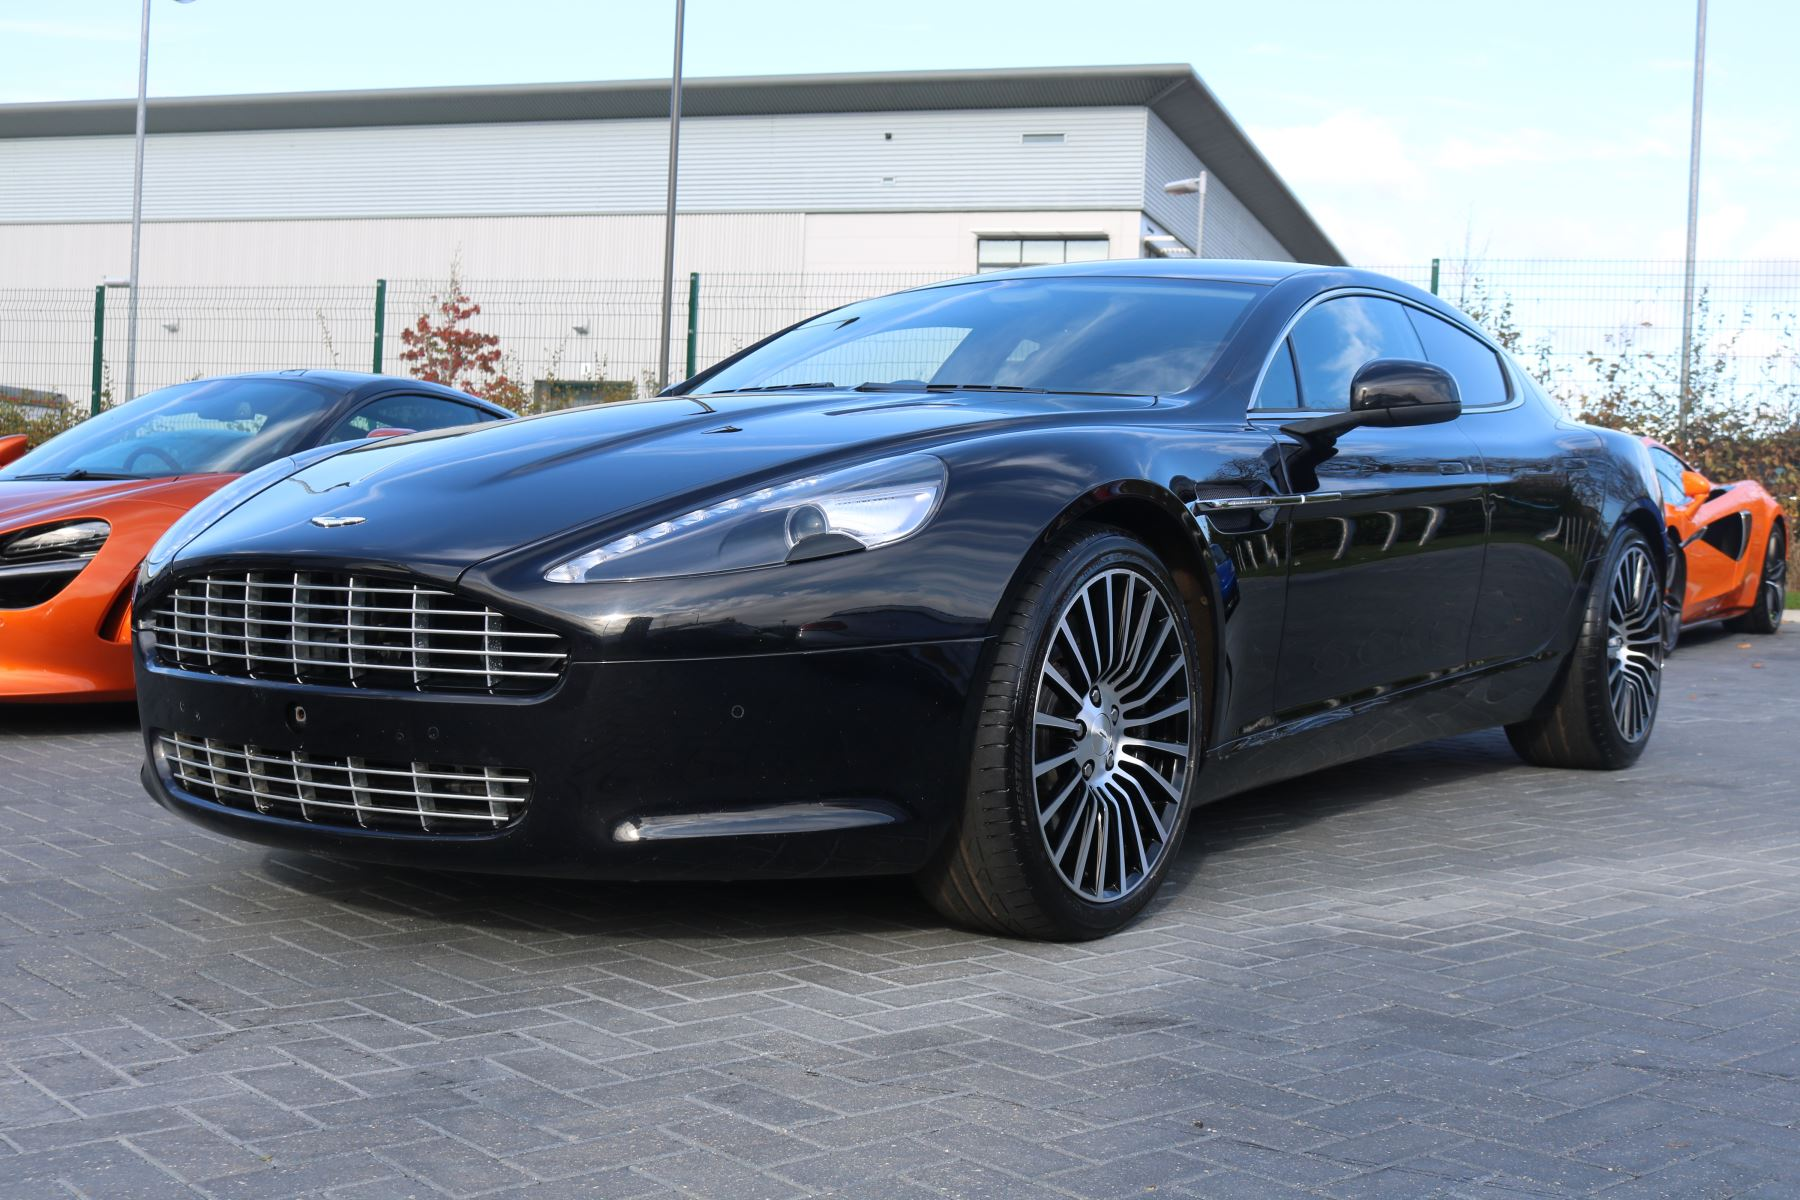 Aston Martin Rapide V12 4dr Touchtronic 5.9 Automatic 5 door Saloon (2012)